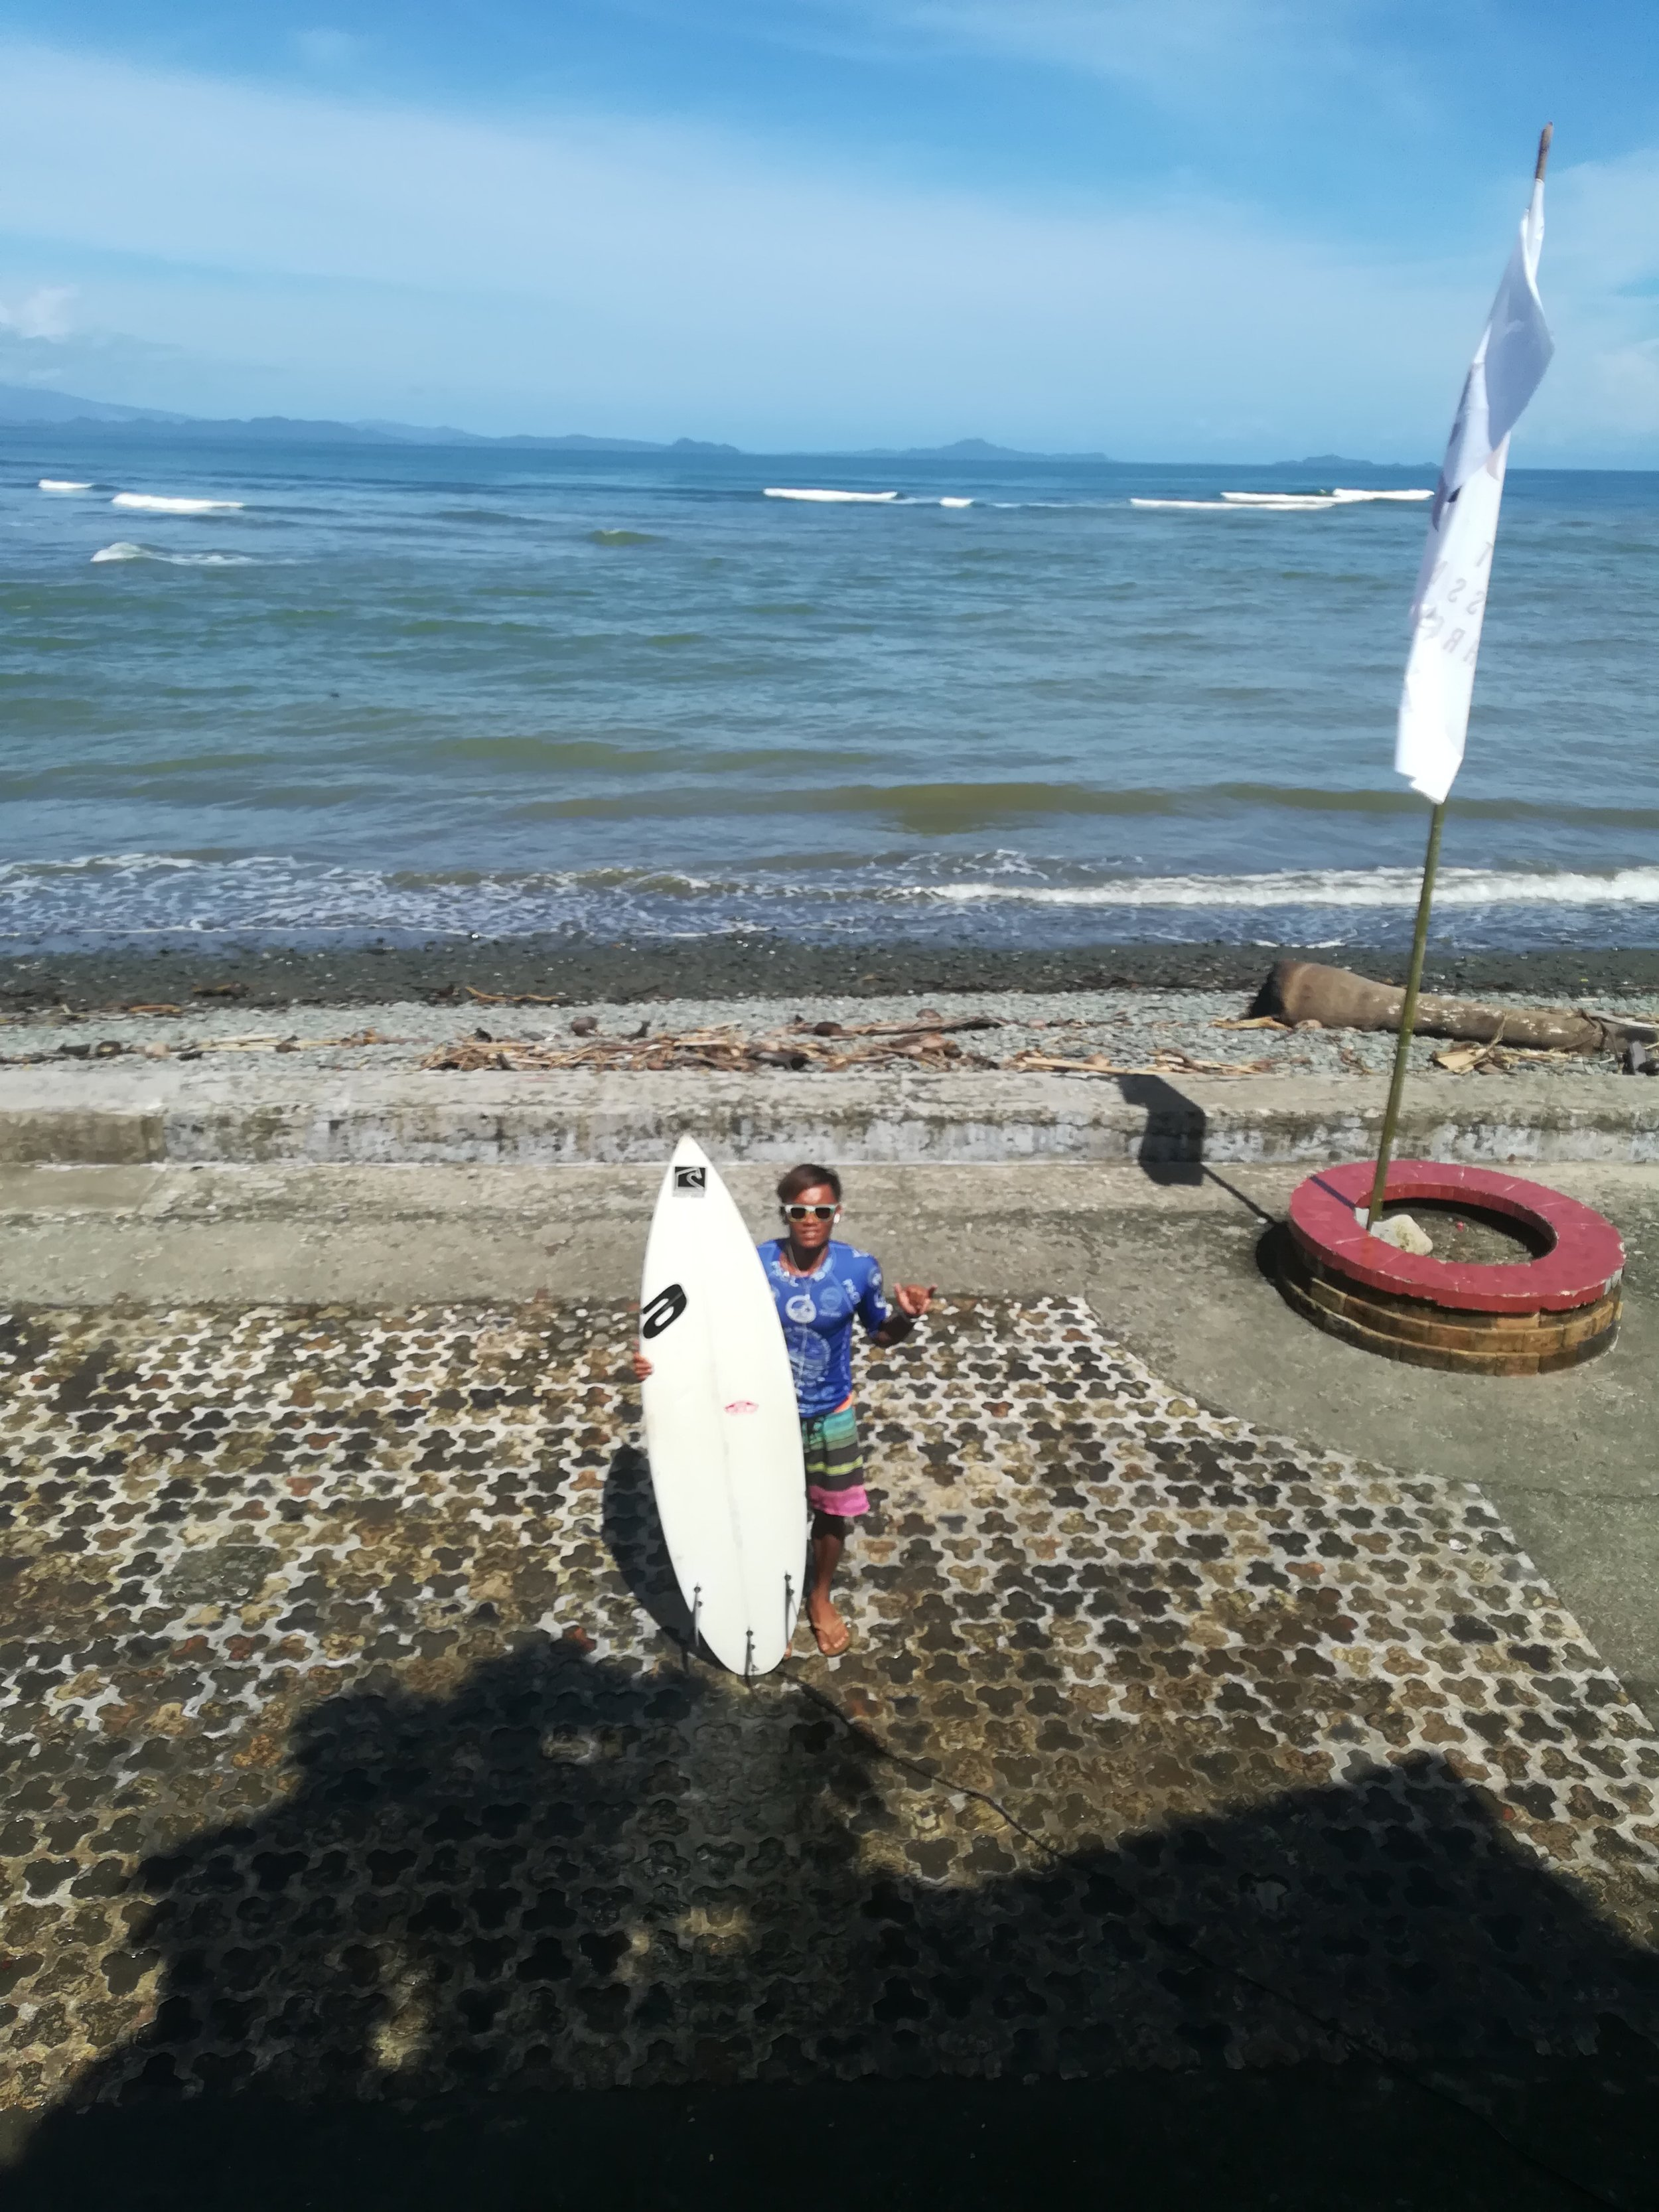 Dahican local Chito Plania getting ready for this Round 3 heat.